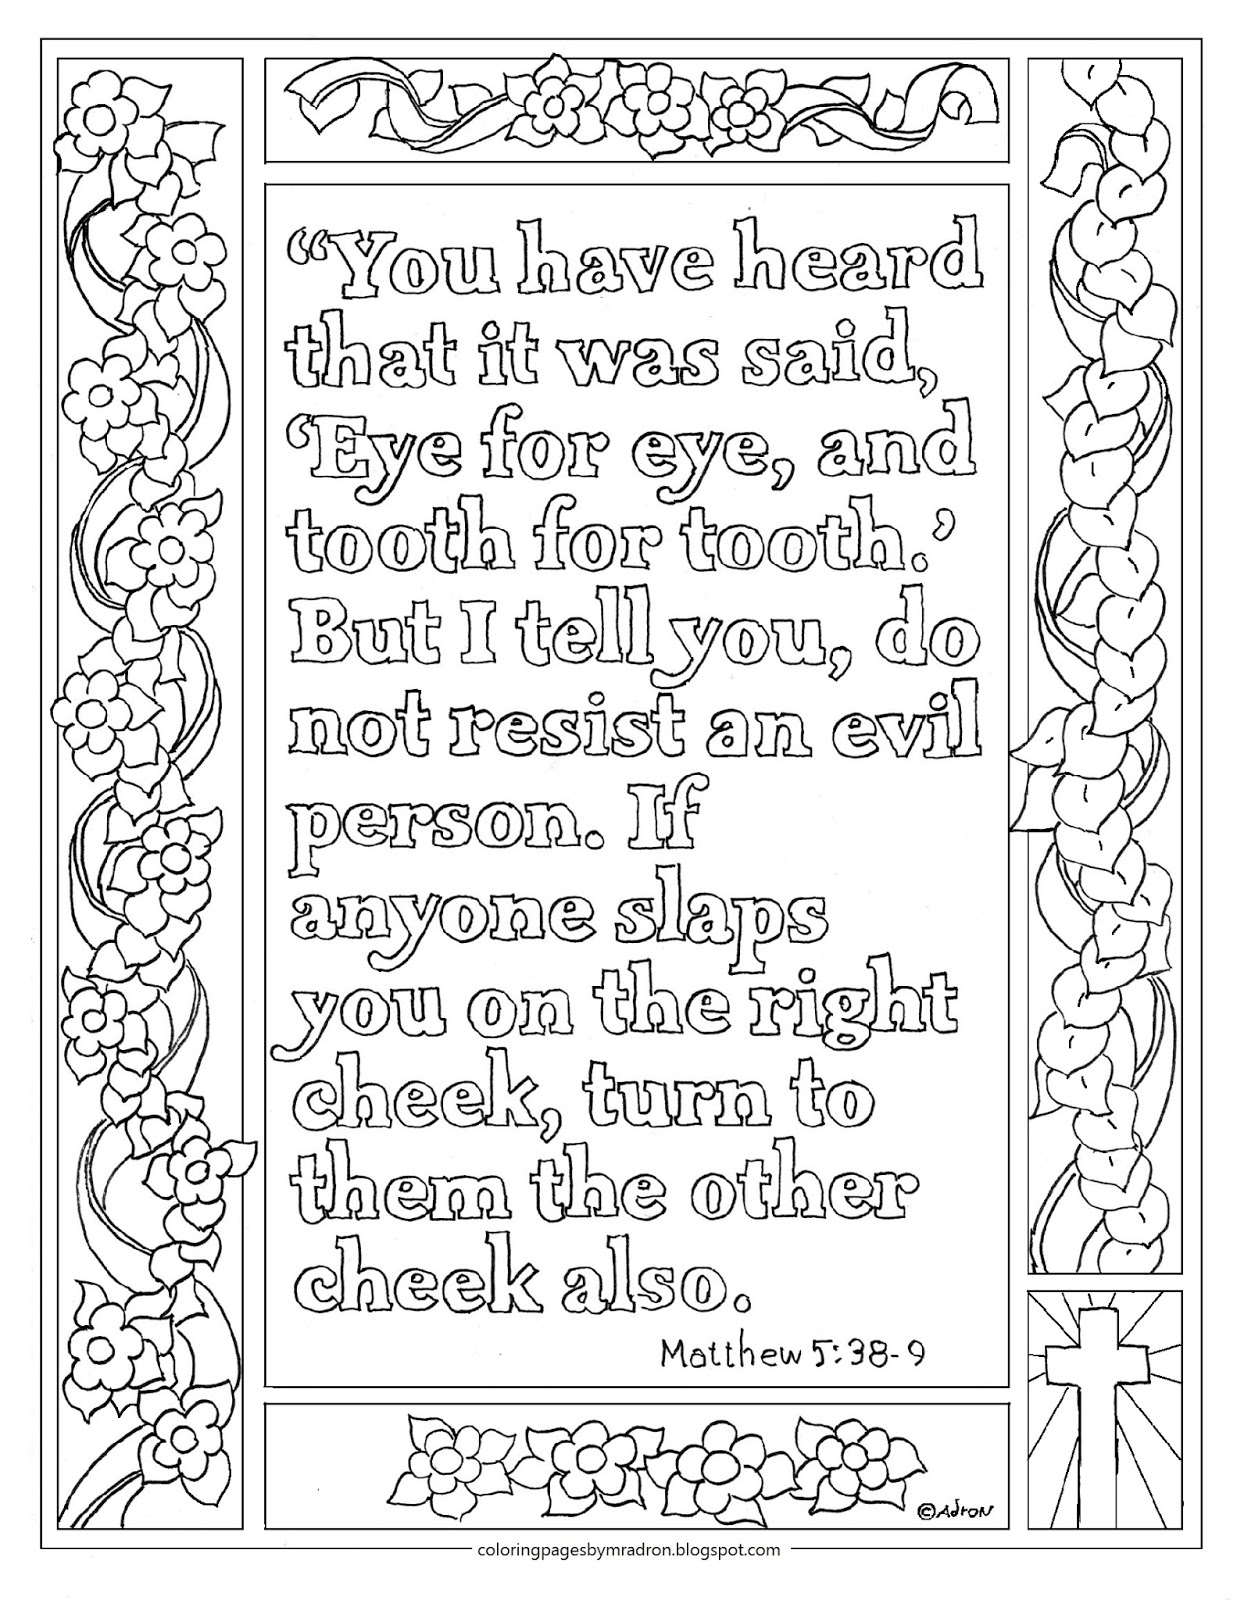 Coloring Pages With New Testament Bible Verses